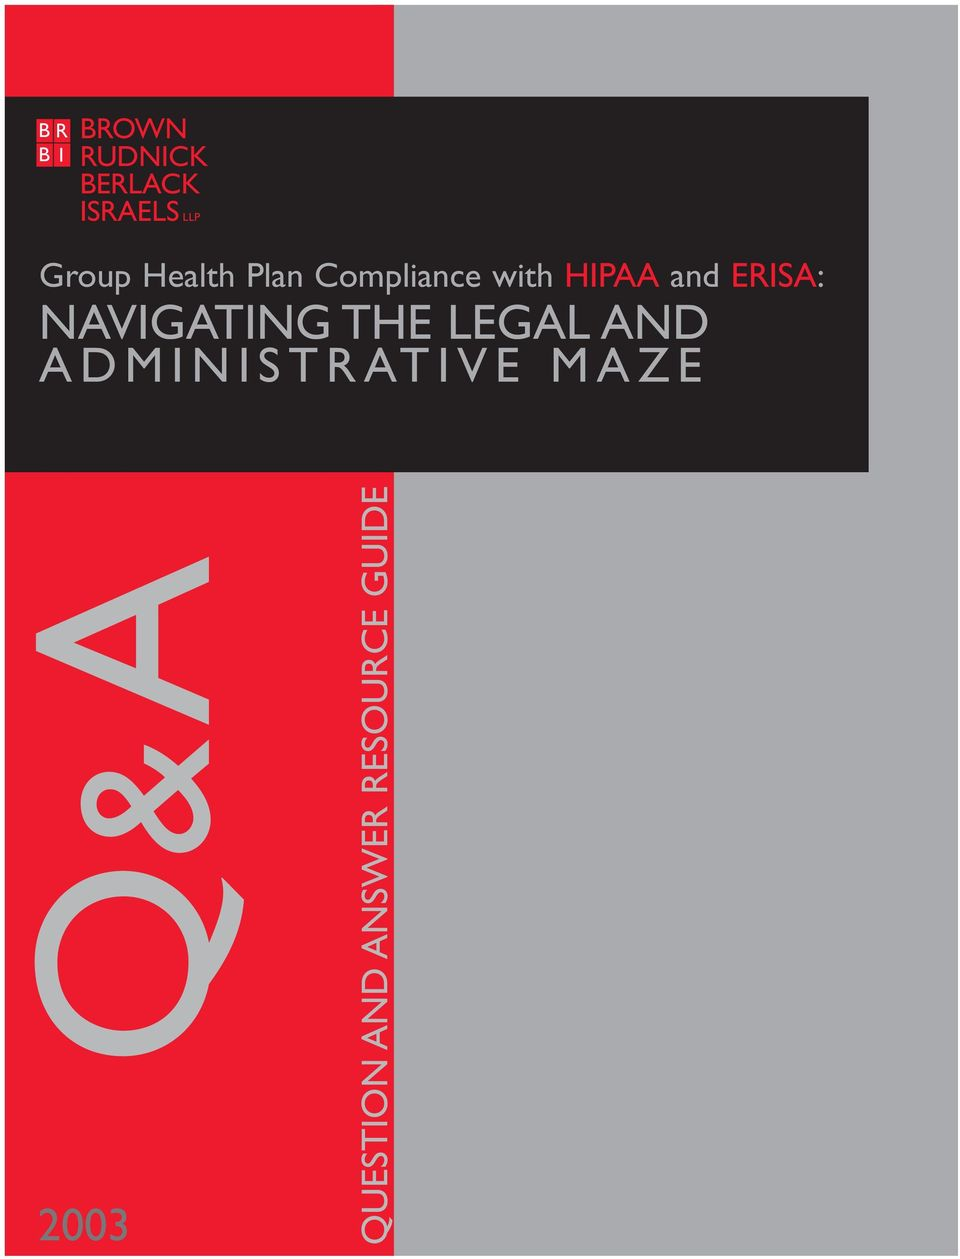 ERISA: NAVIGATING THE LEGAL AND